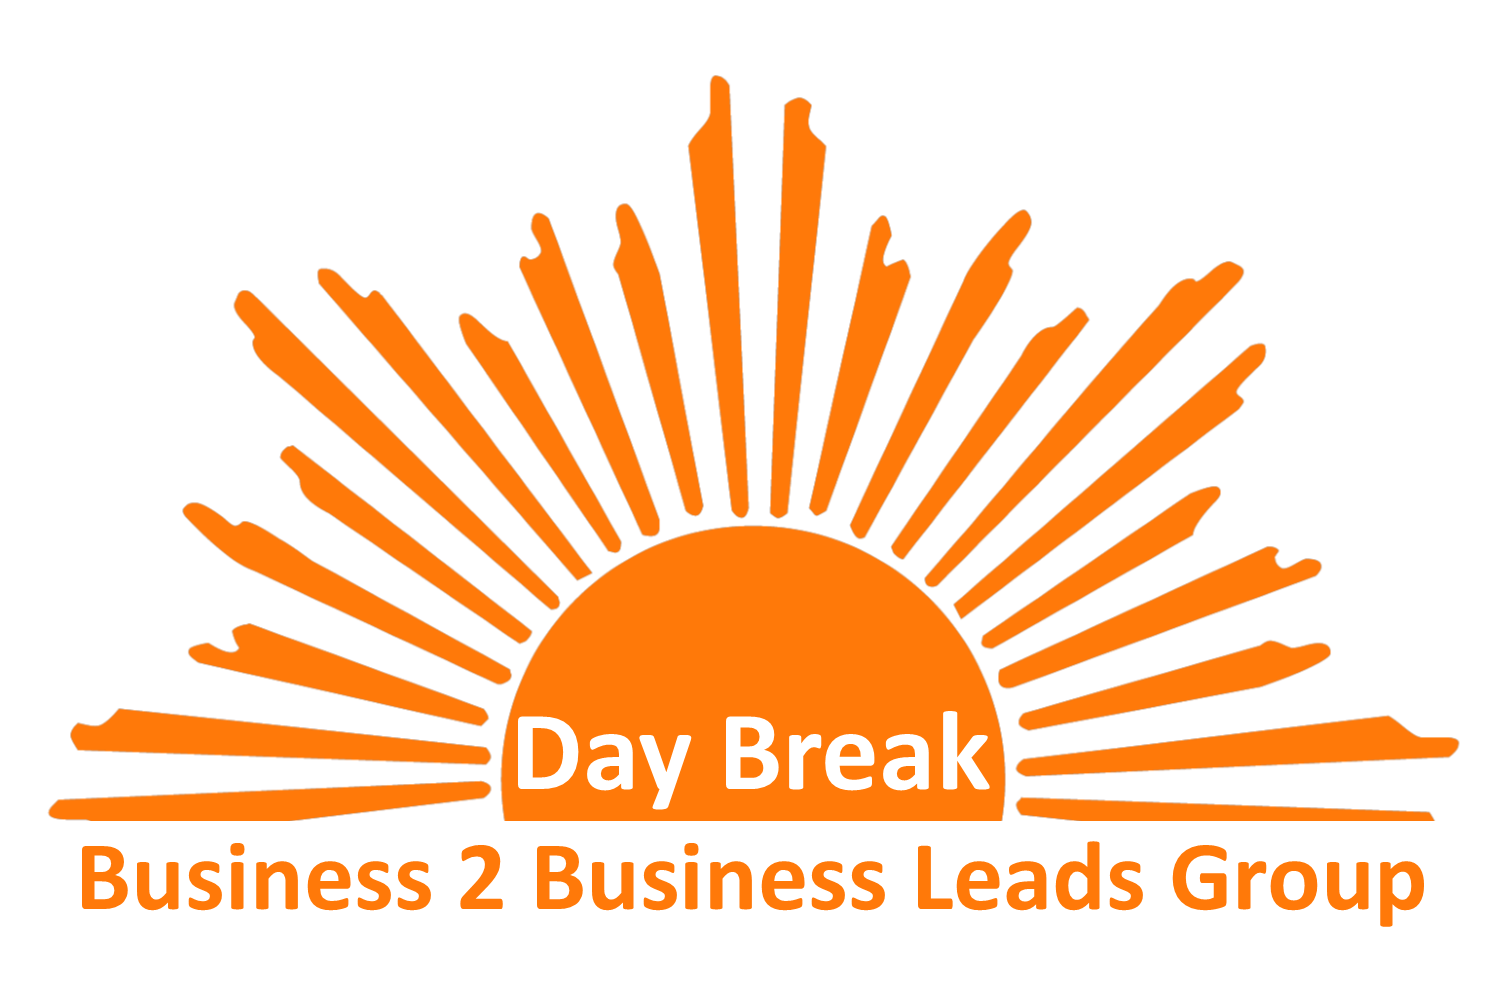 Day Break Leads Group